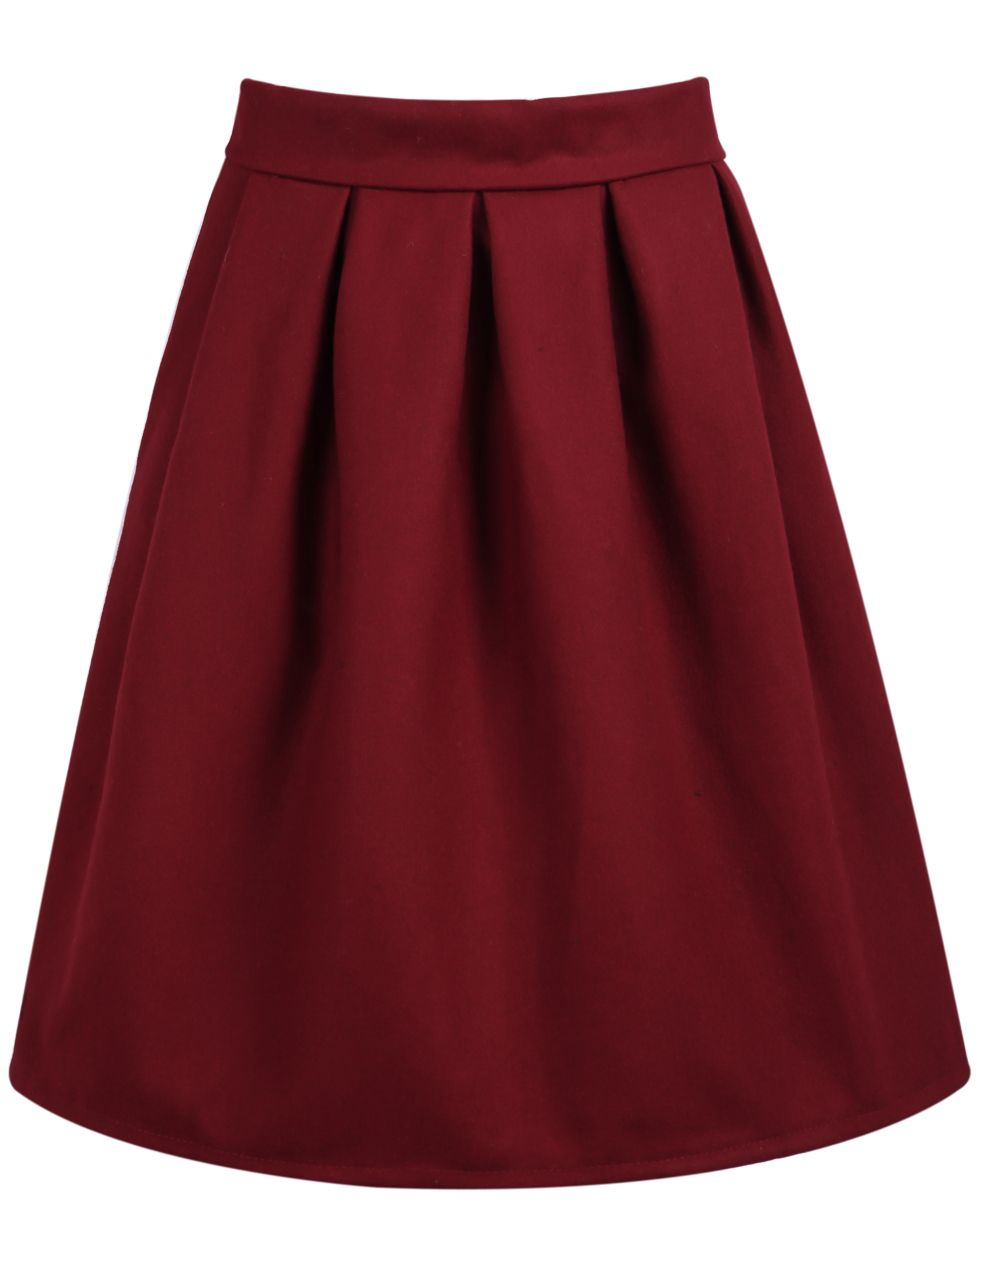 High Waist Wine Red Skirt